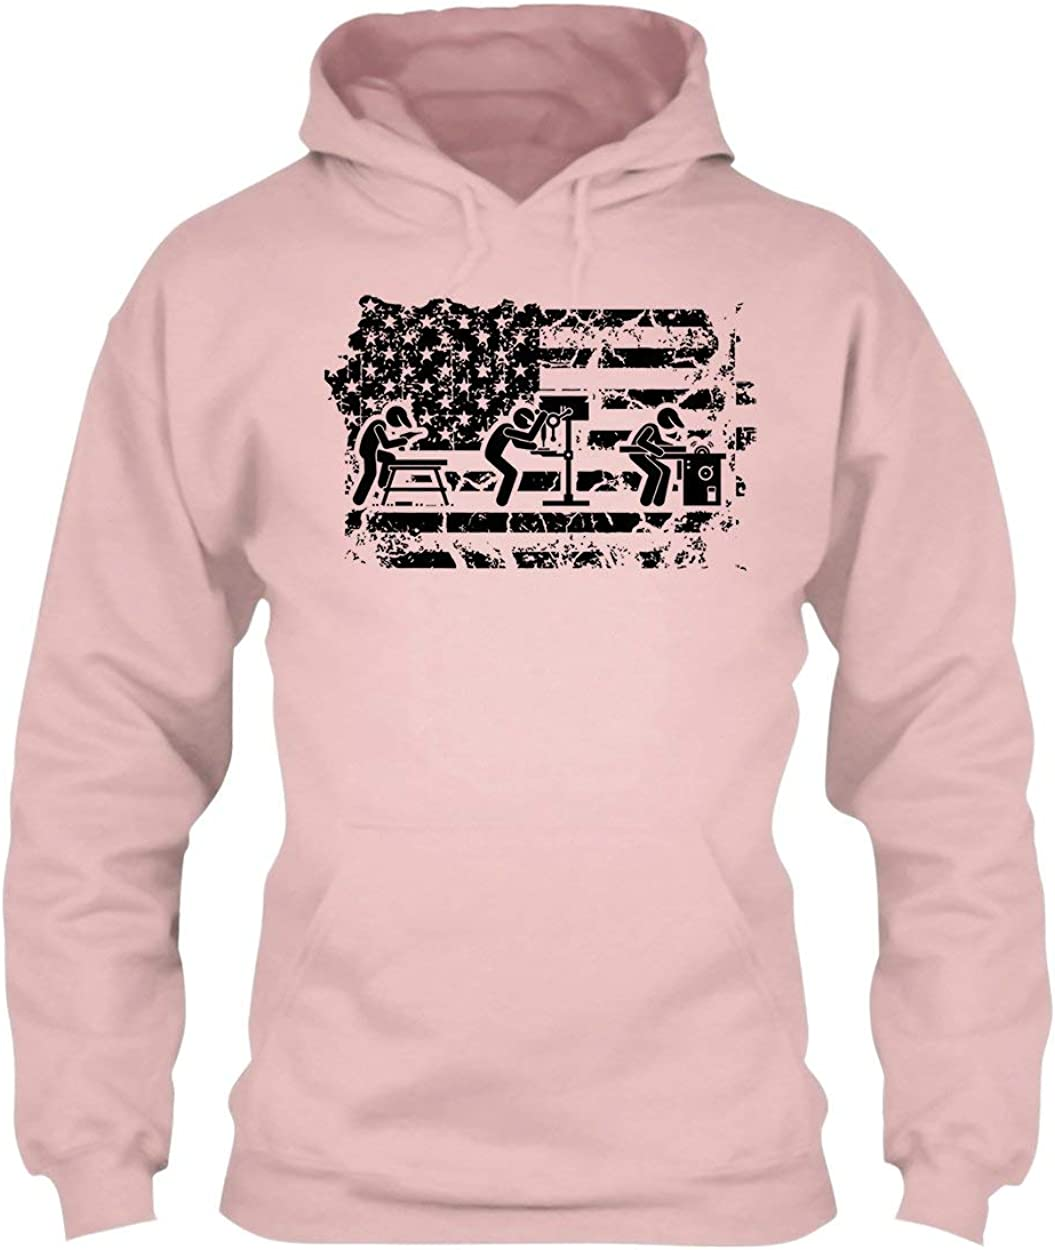 Shirt Woodworking Flag Tee Shirt Hoodies